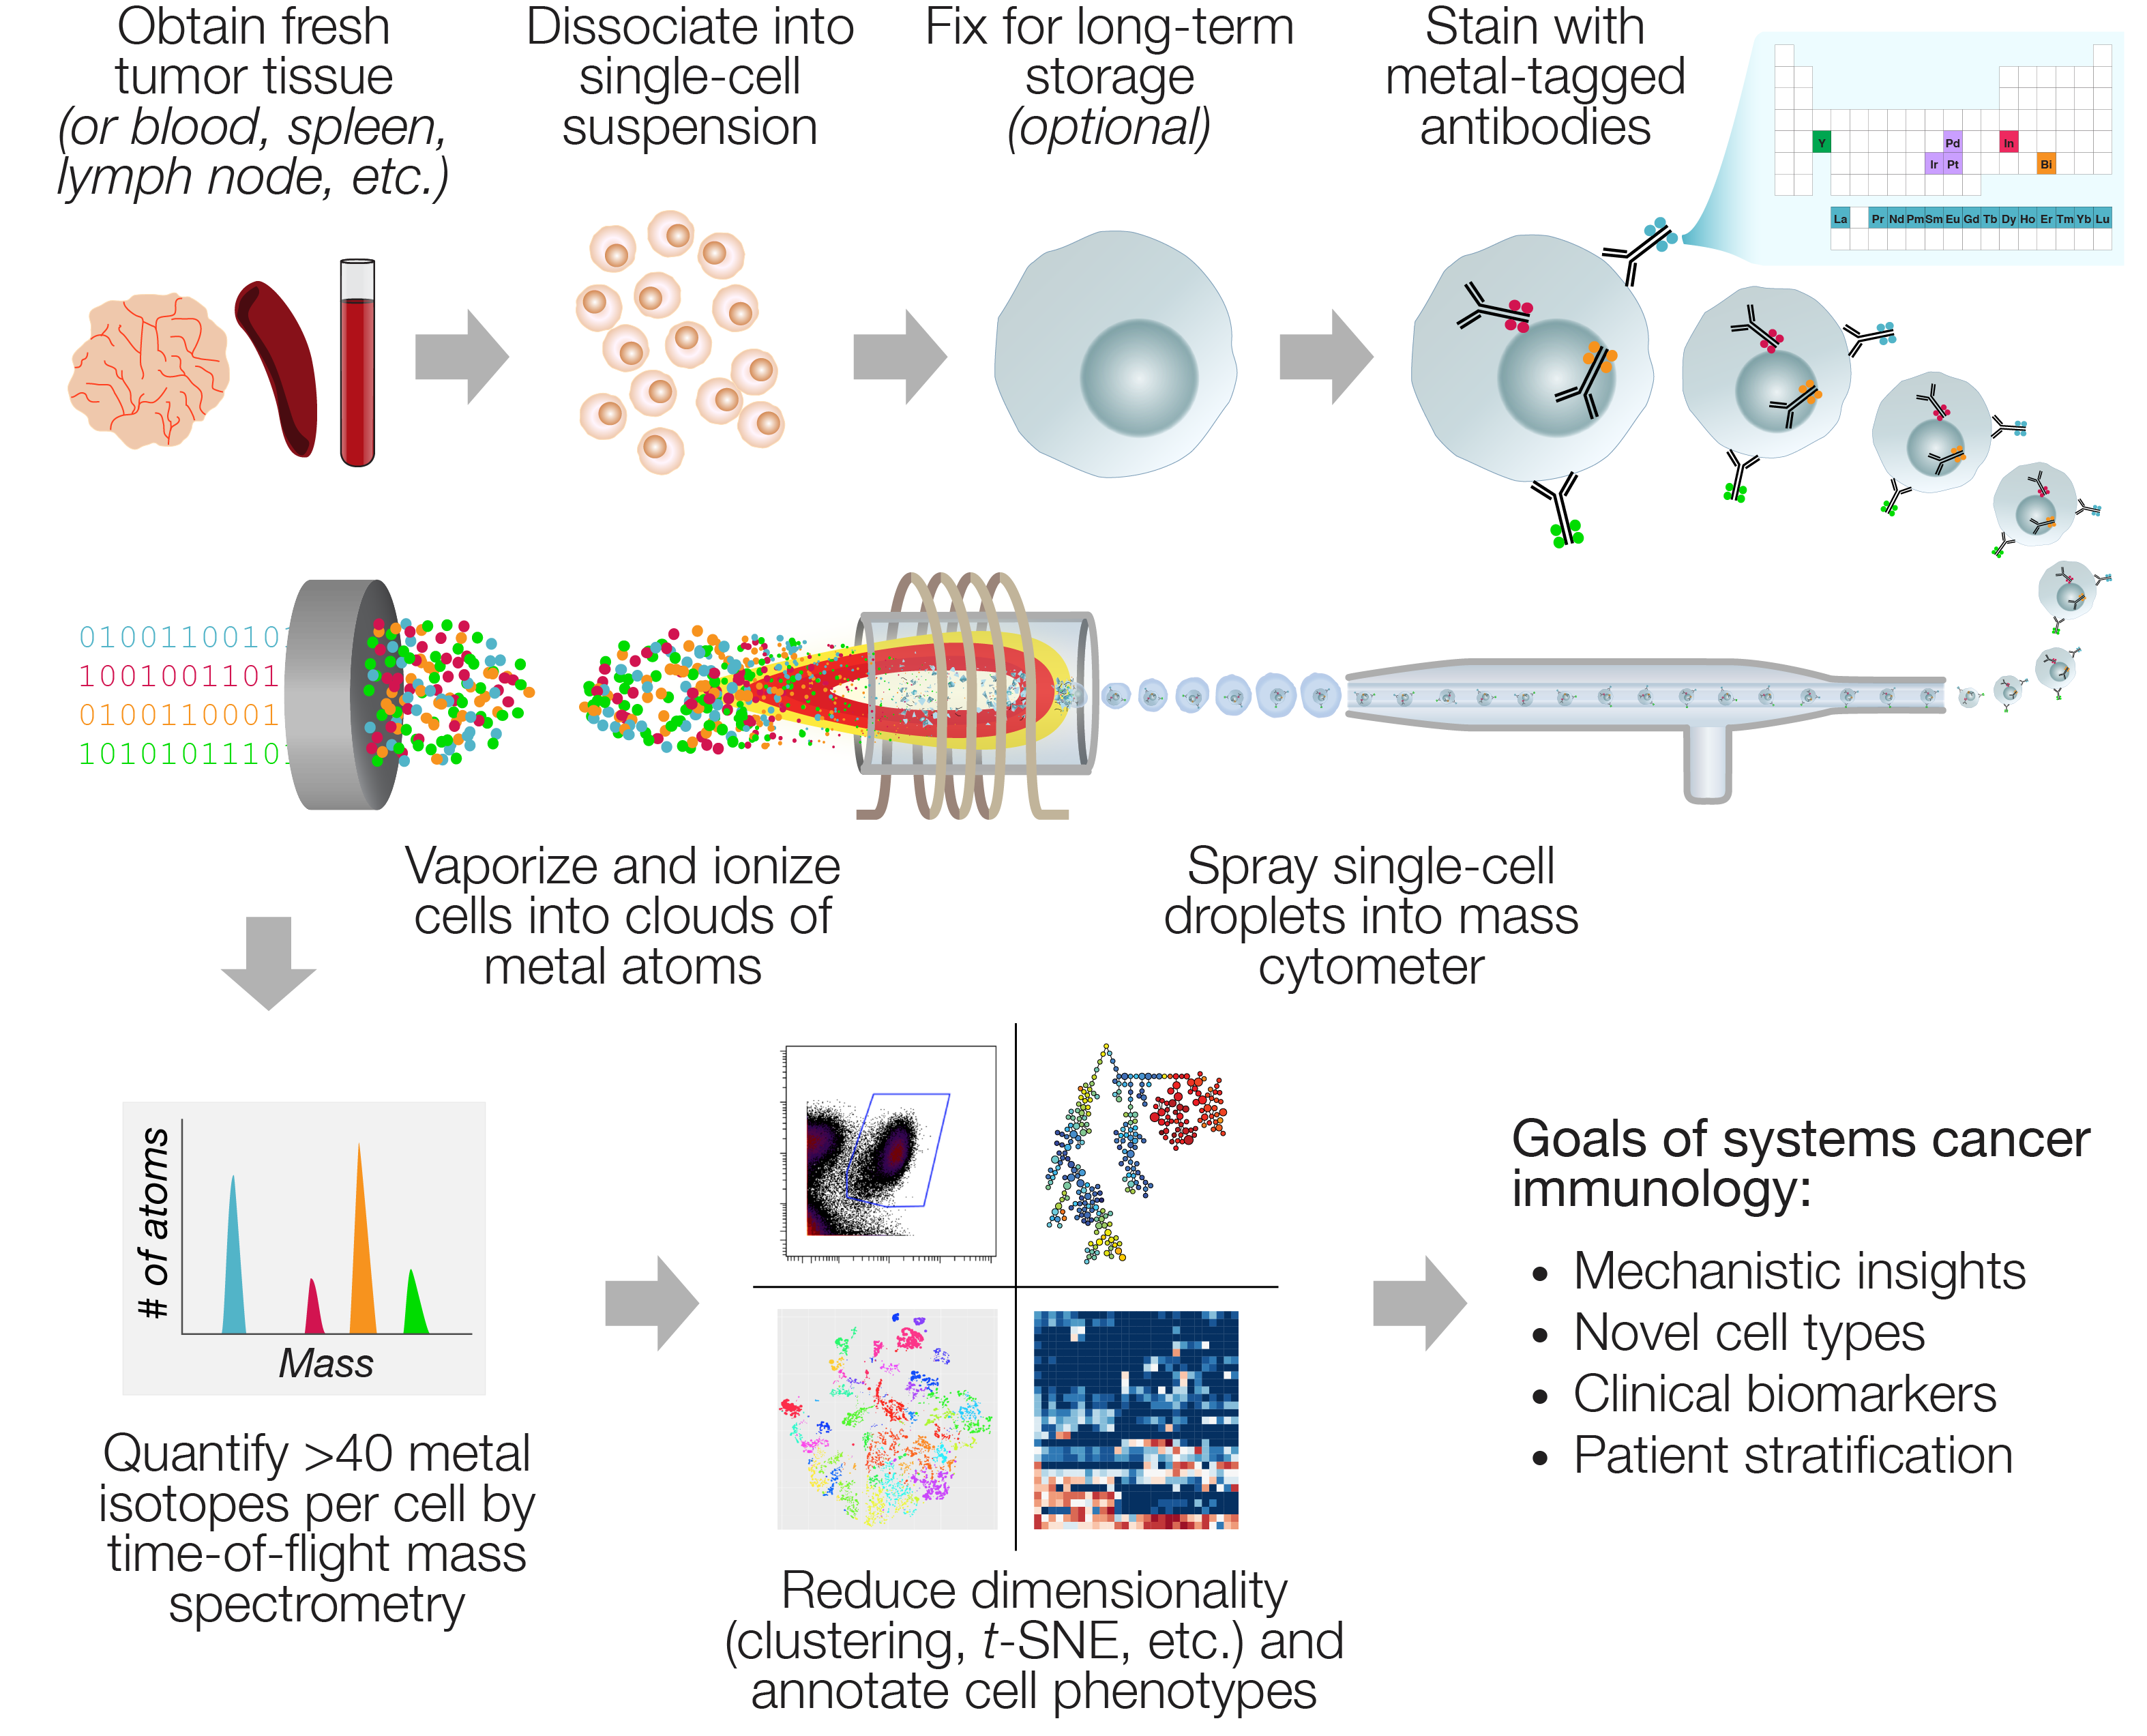 Mass cytometry analysis of tumor and immune tissues informs cancer systems immunology